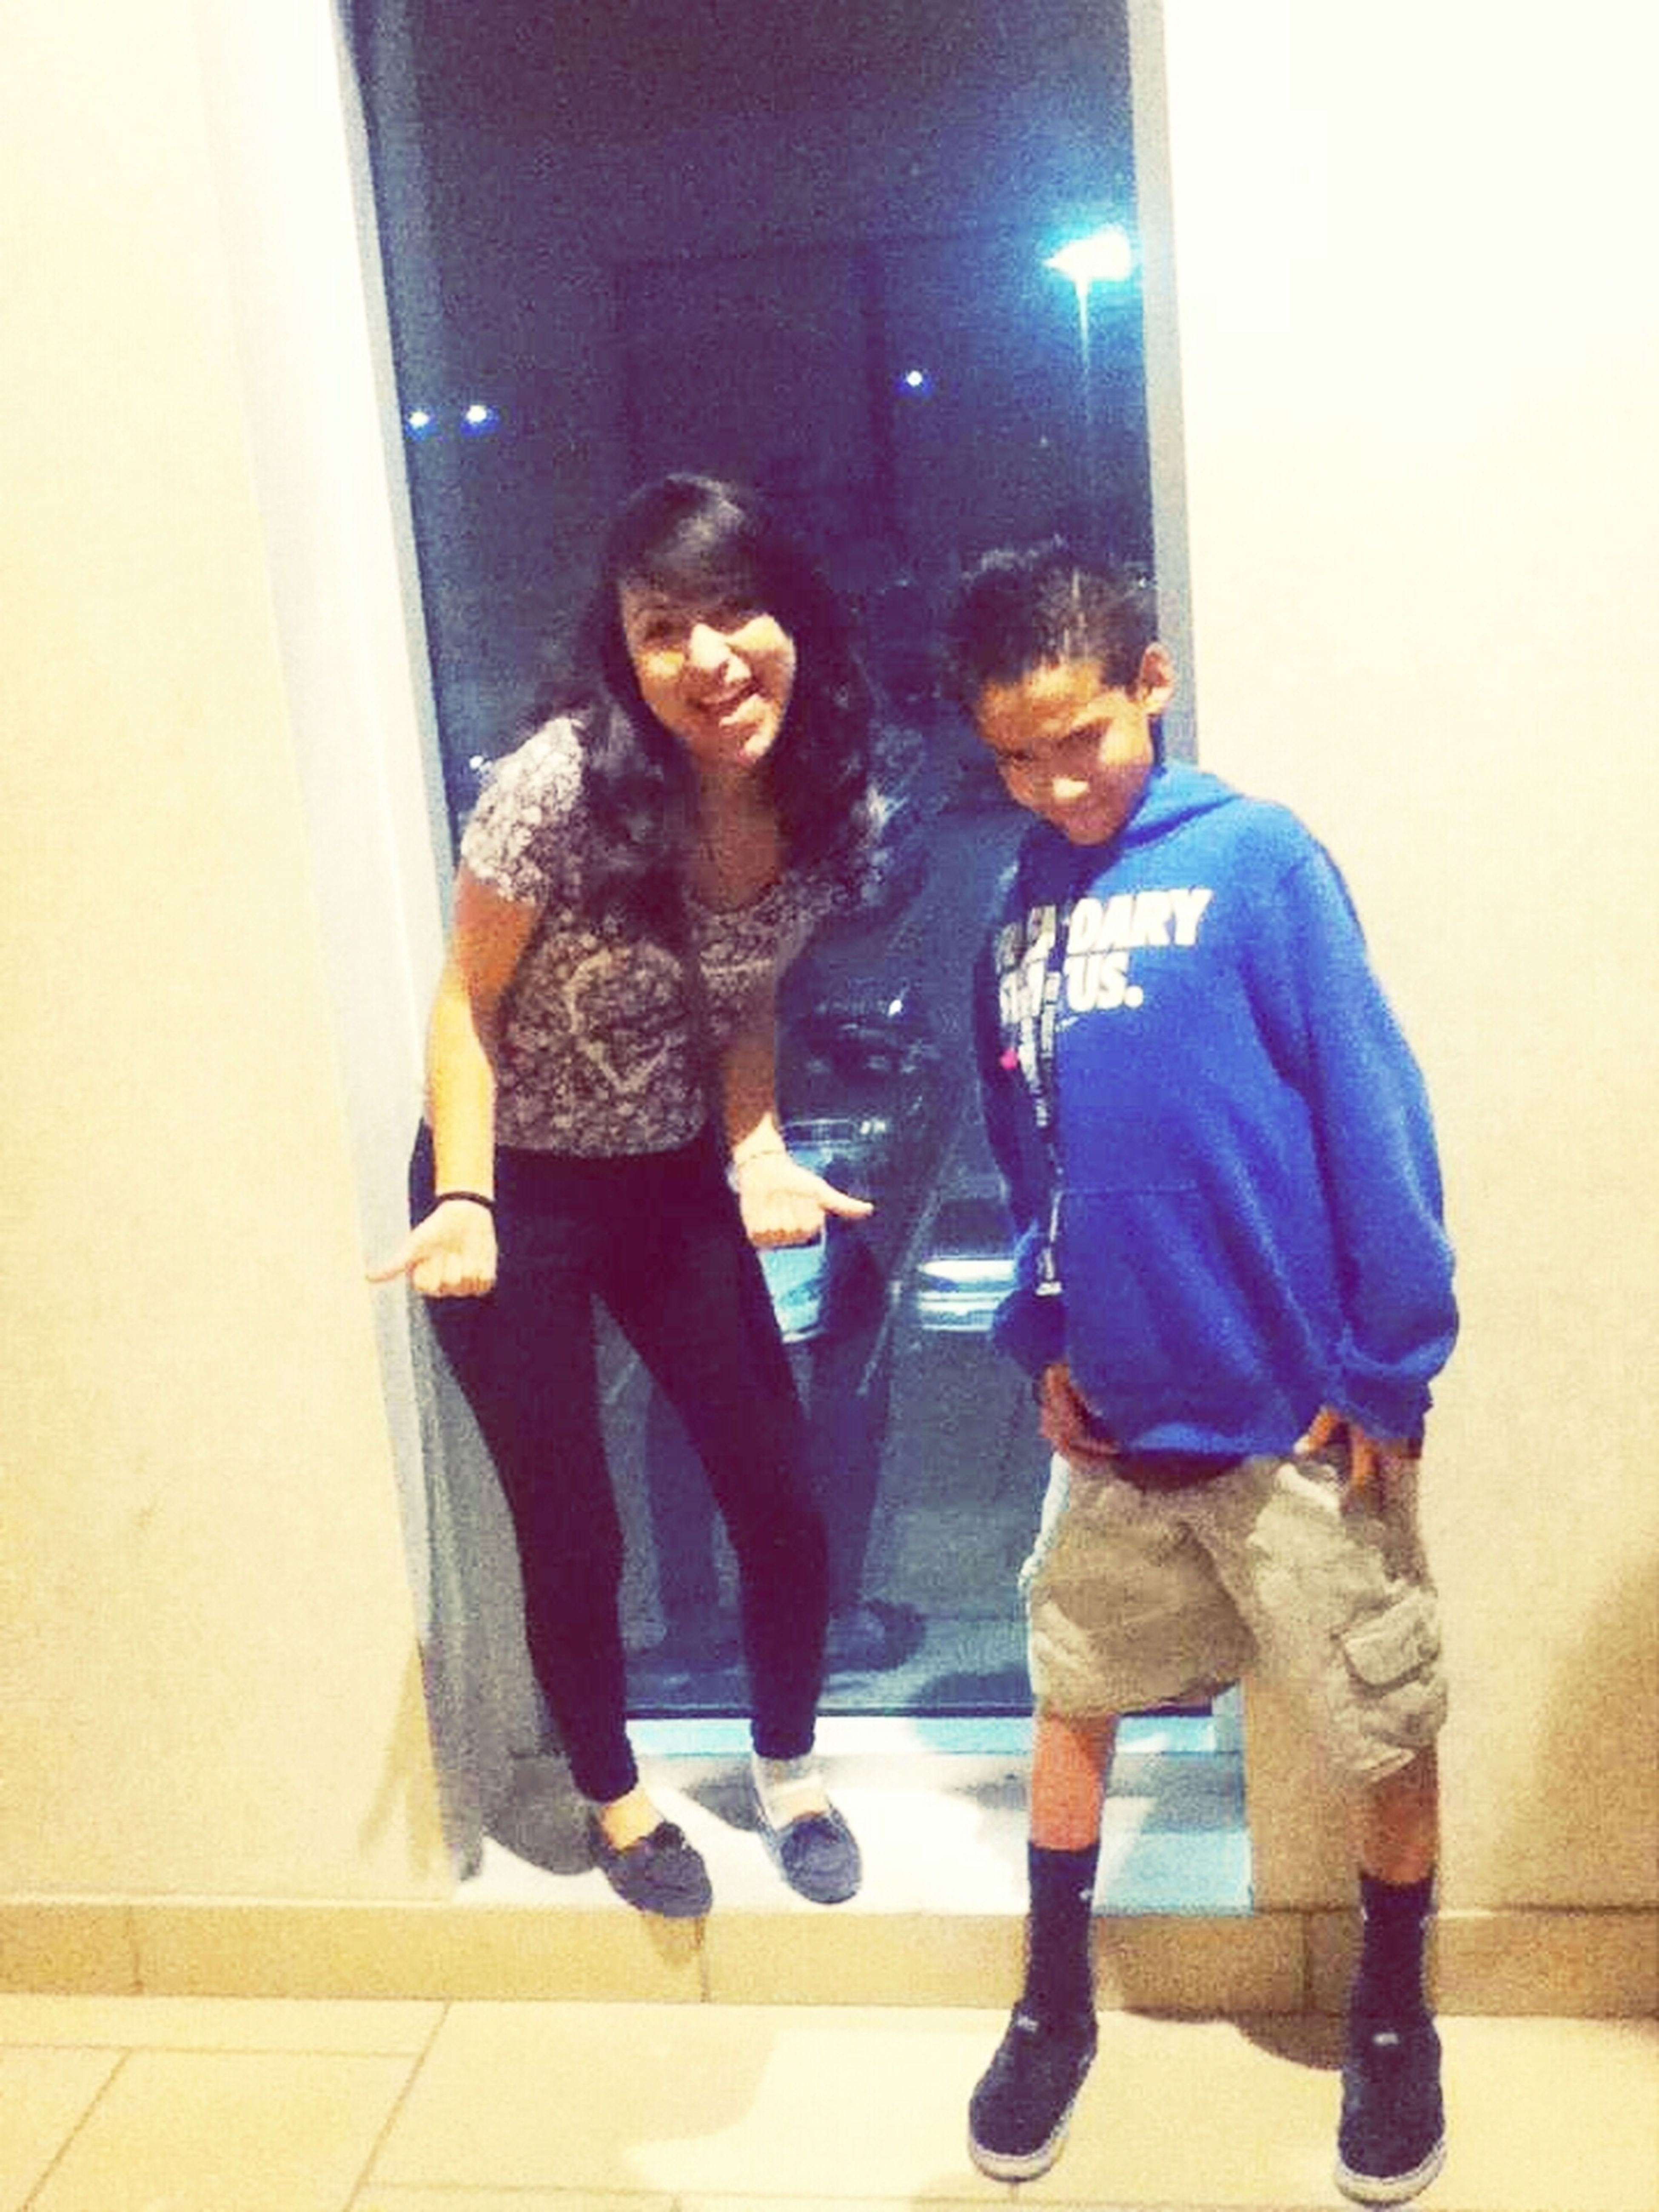 The other day at the mall.